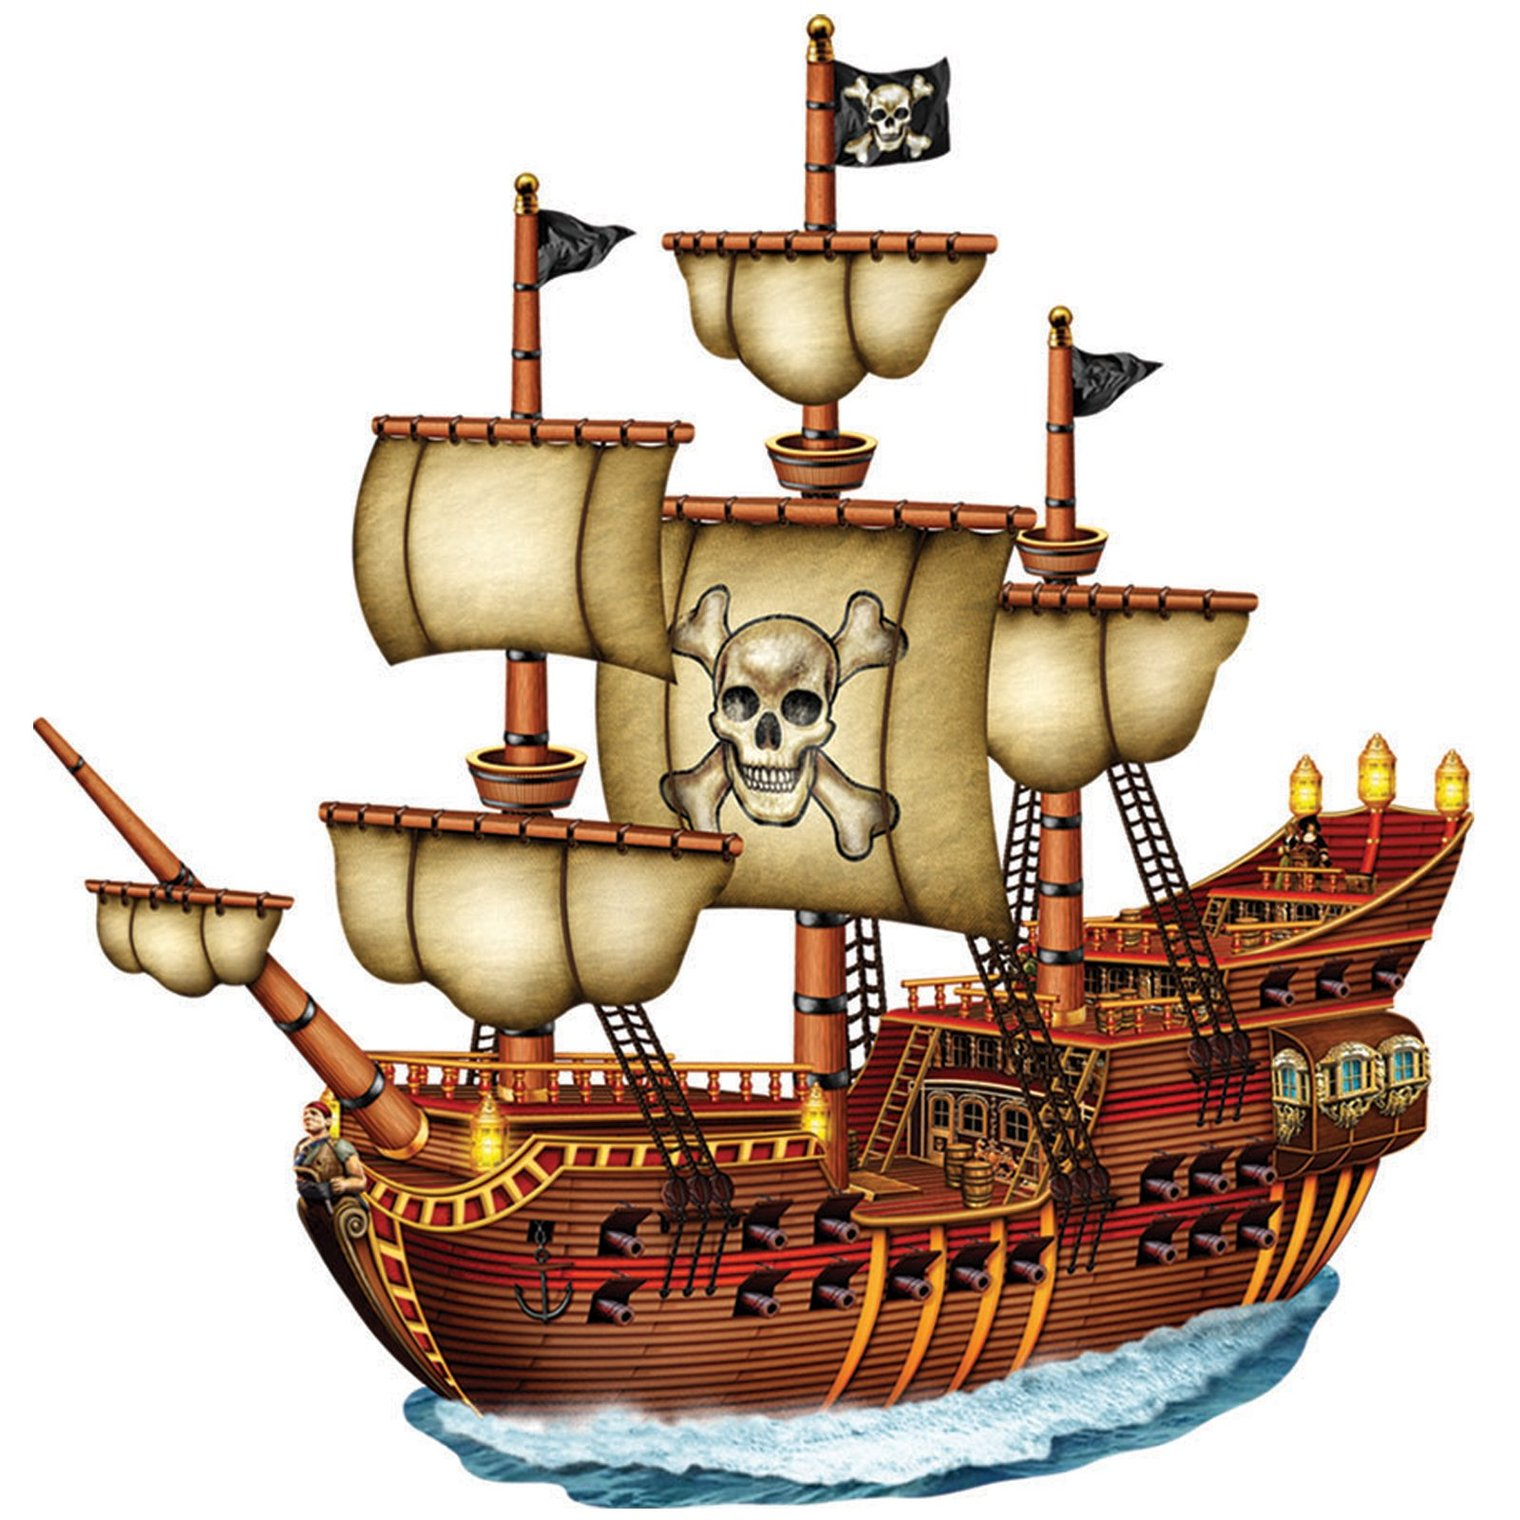 Pirate ship clipart #3